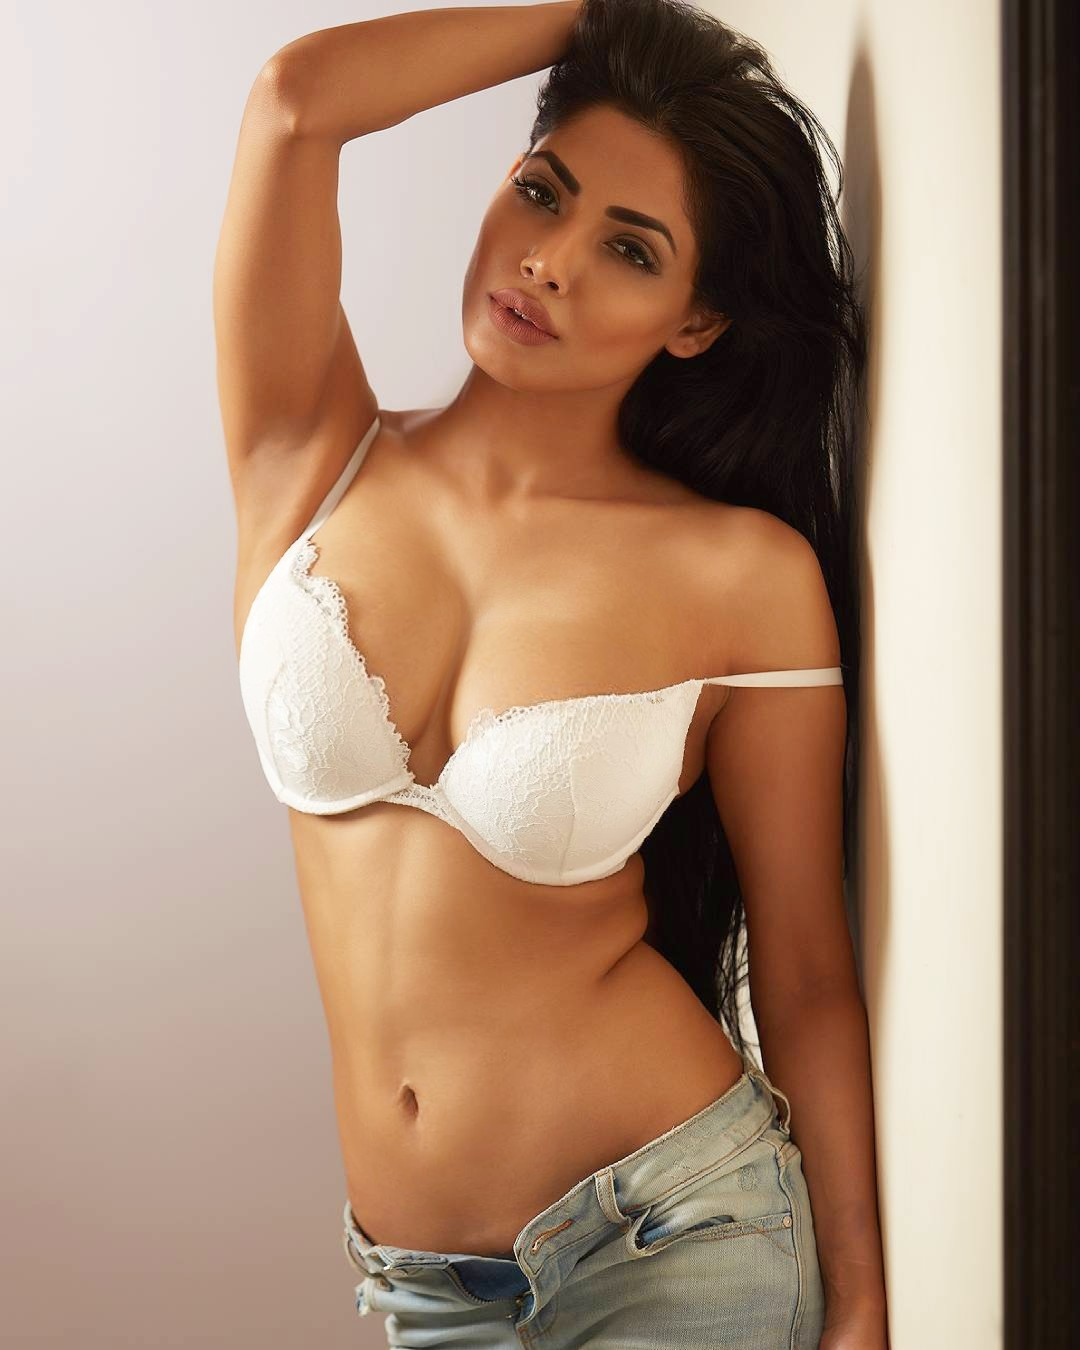 Hot Indian actress pics – Celebrityphotocuts 4